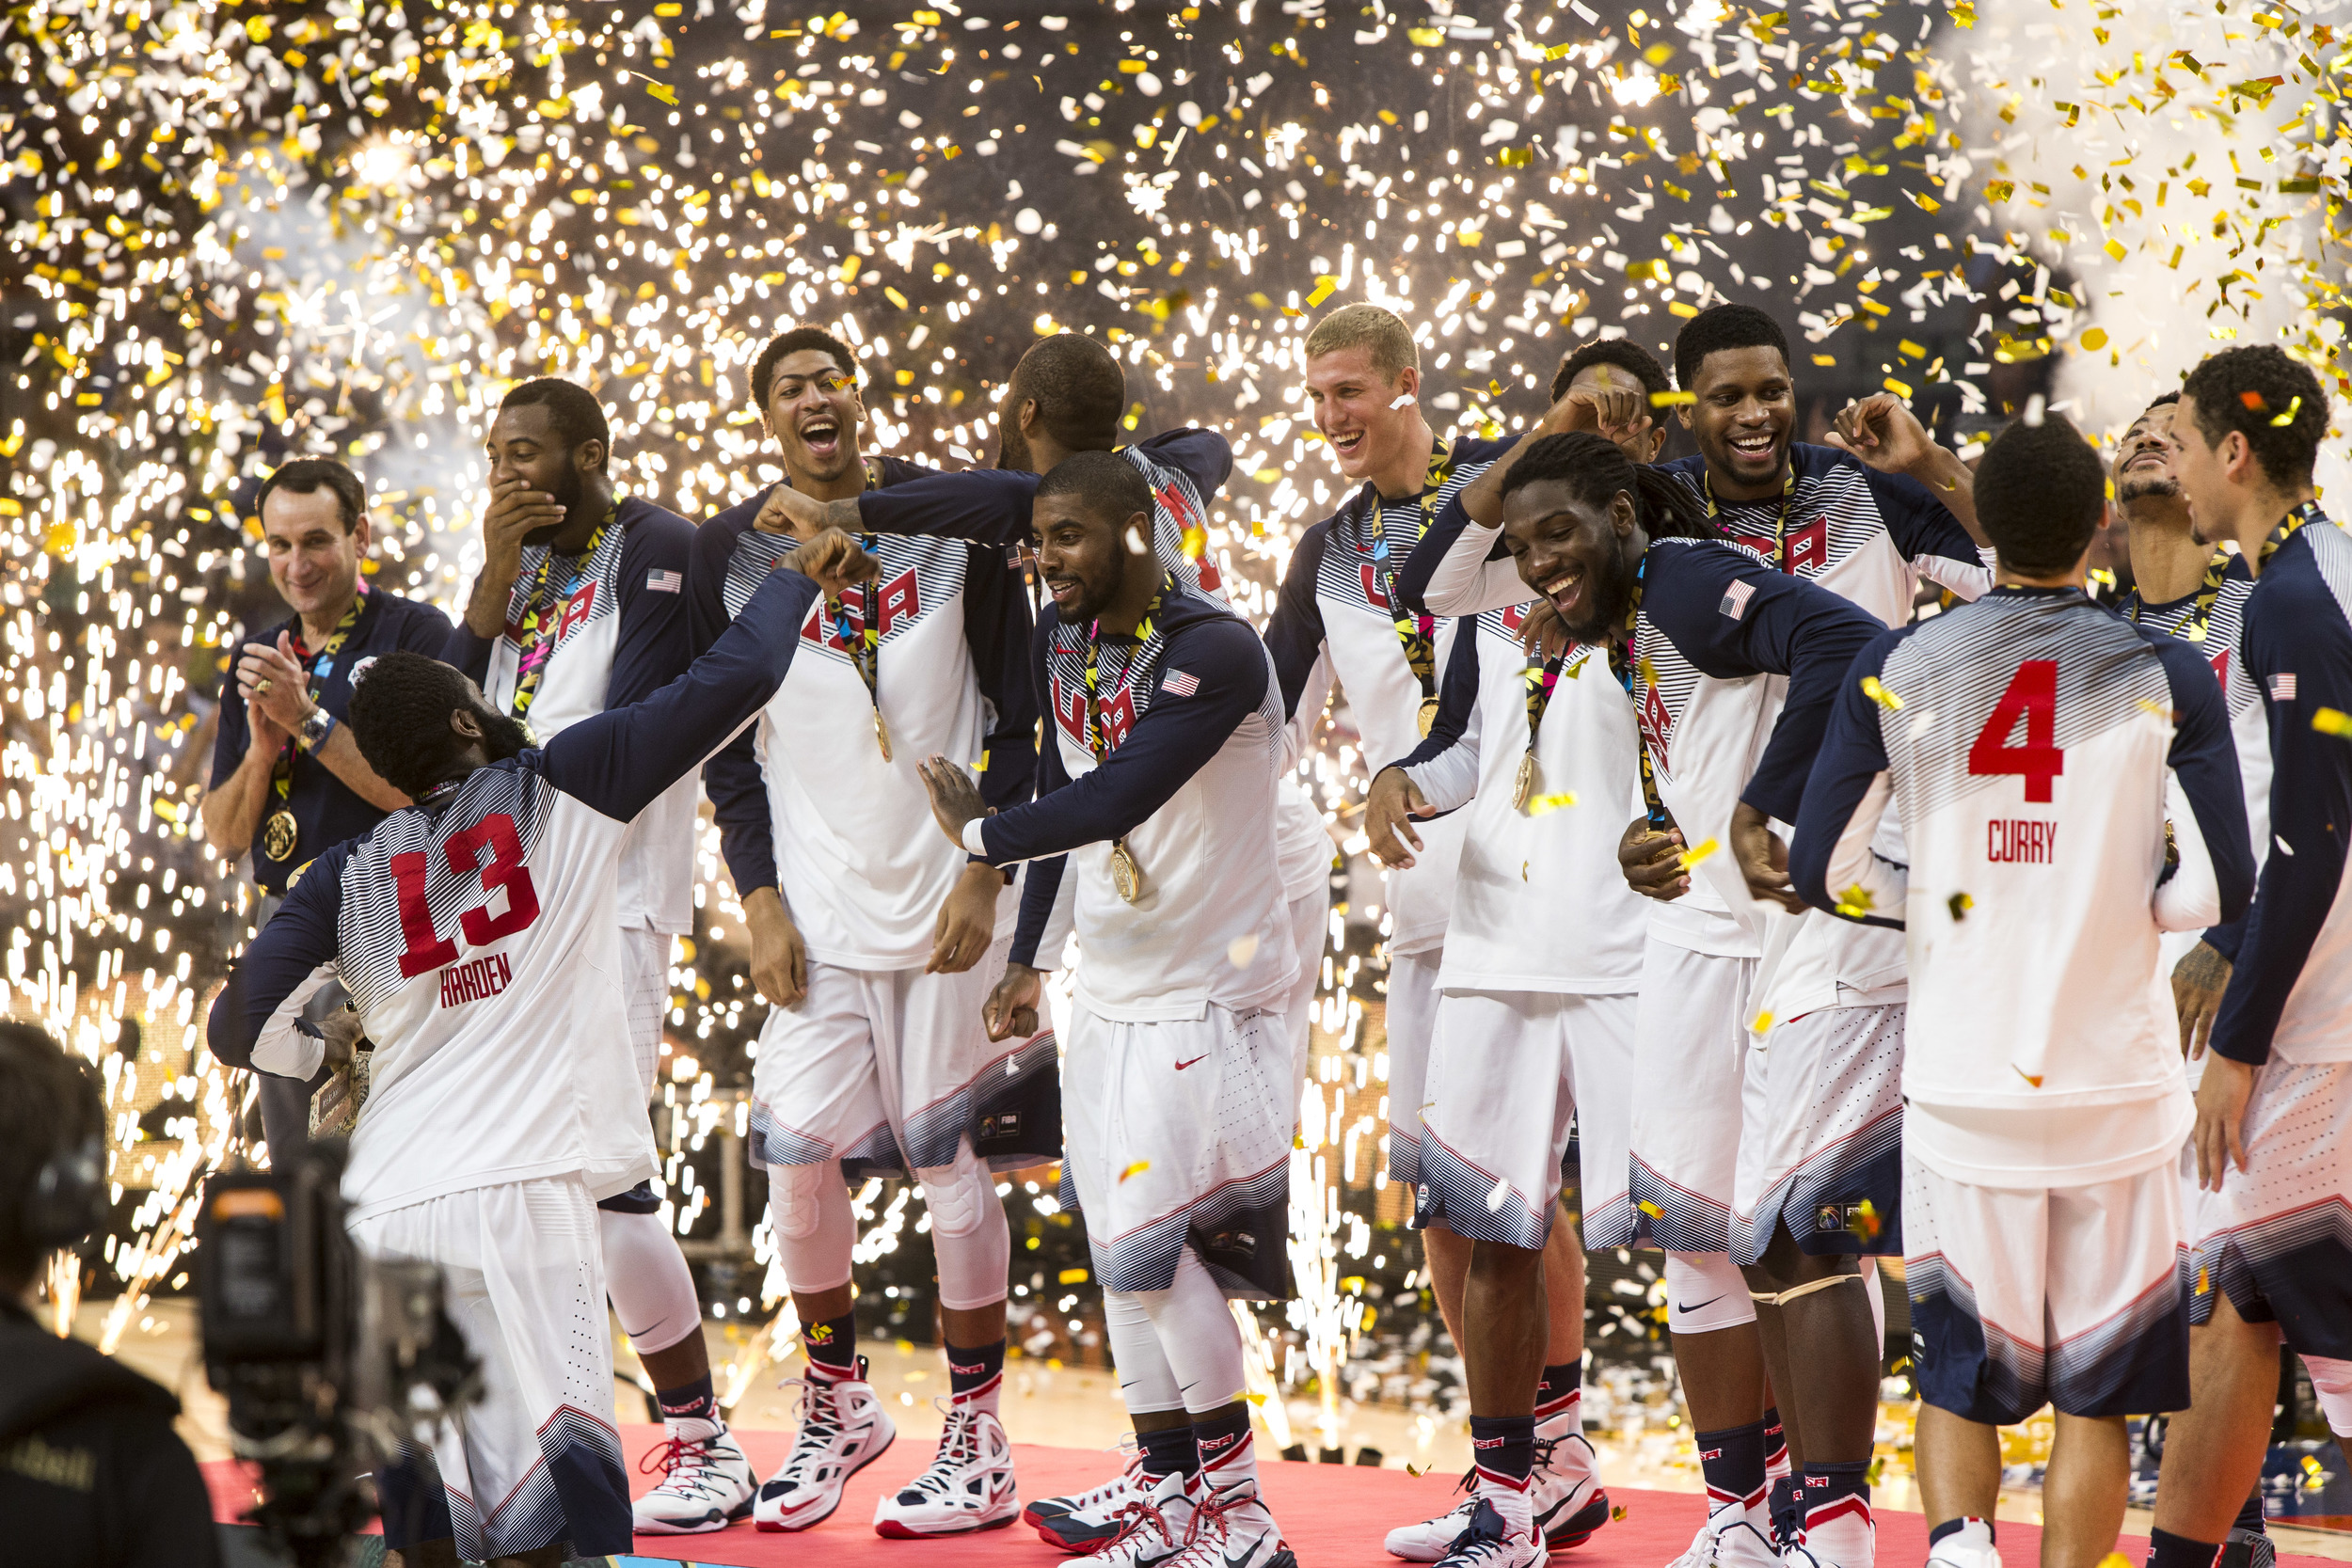 Team USA does the shmoney dance in celebration of the Basketball World Cup gold medal when they defeated Serbia in the championship.